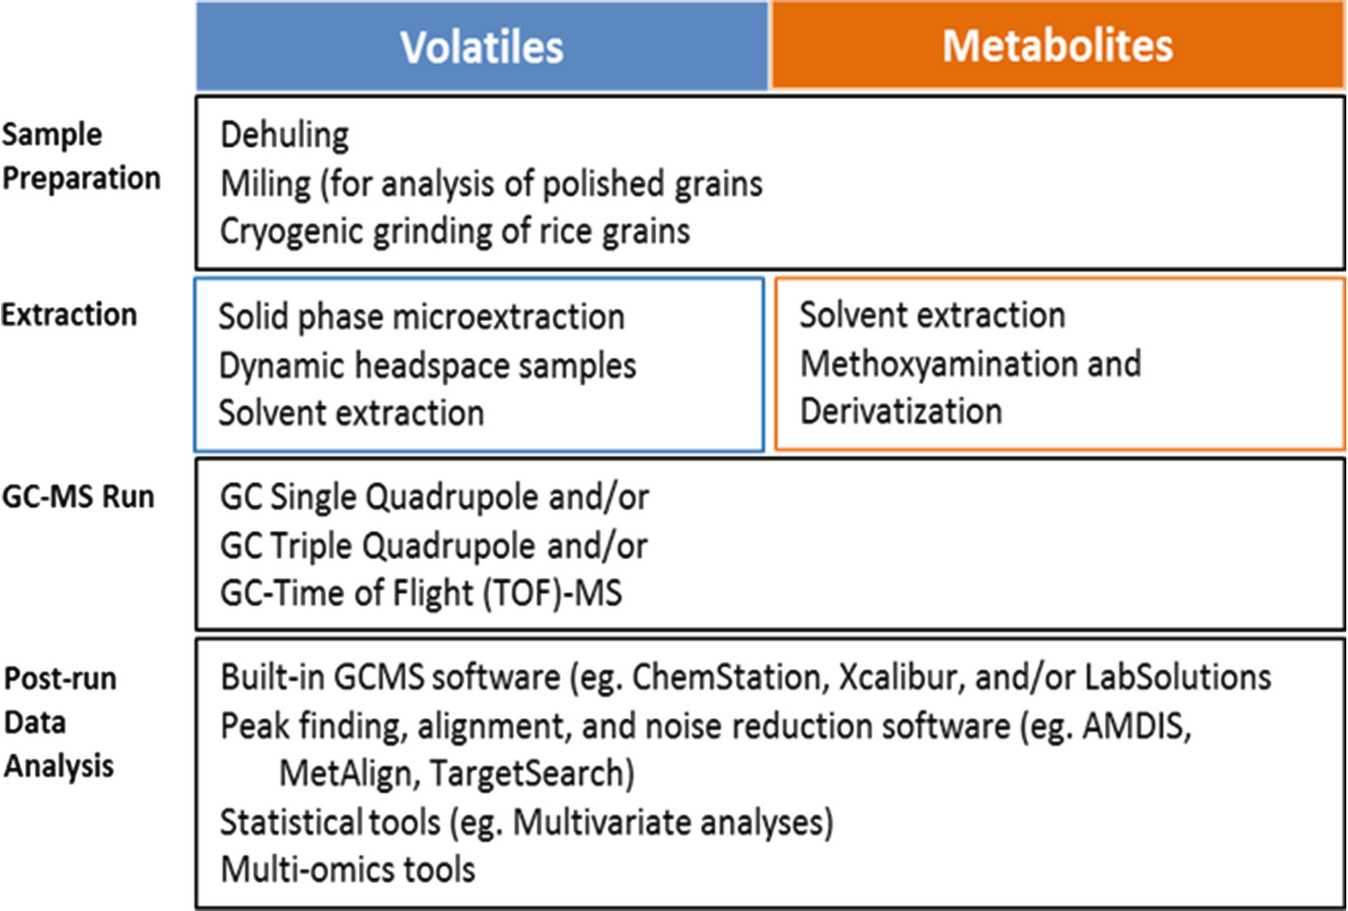 Rice Grain Quality Benchmarking Through Profiling of Volatiles and